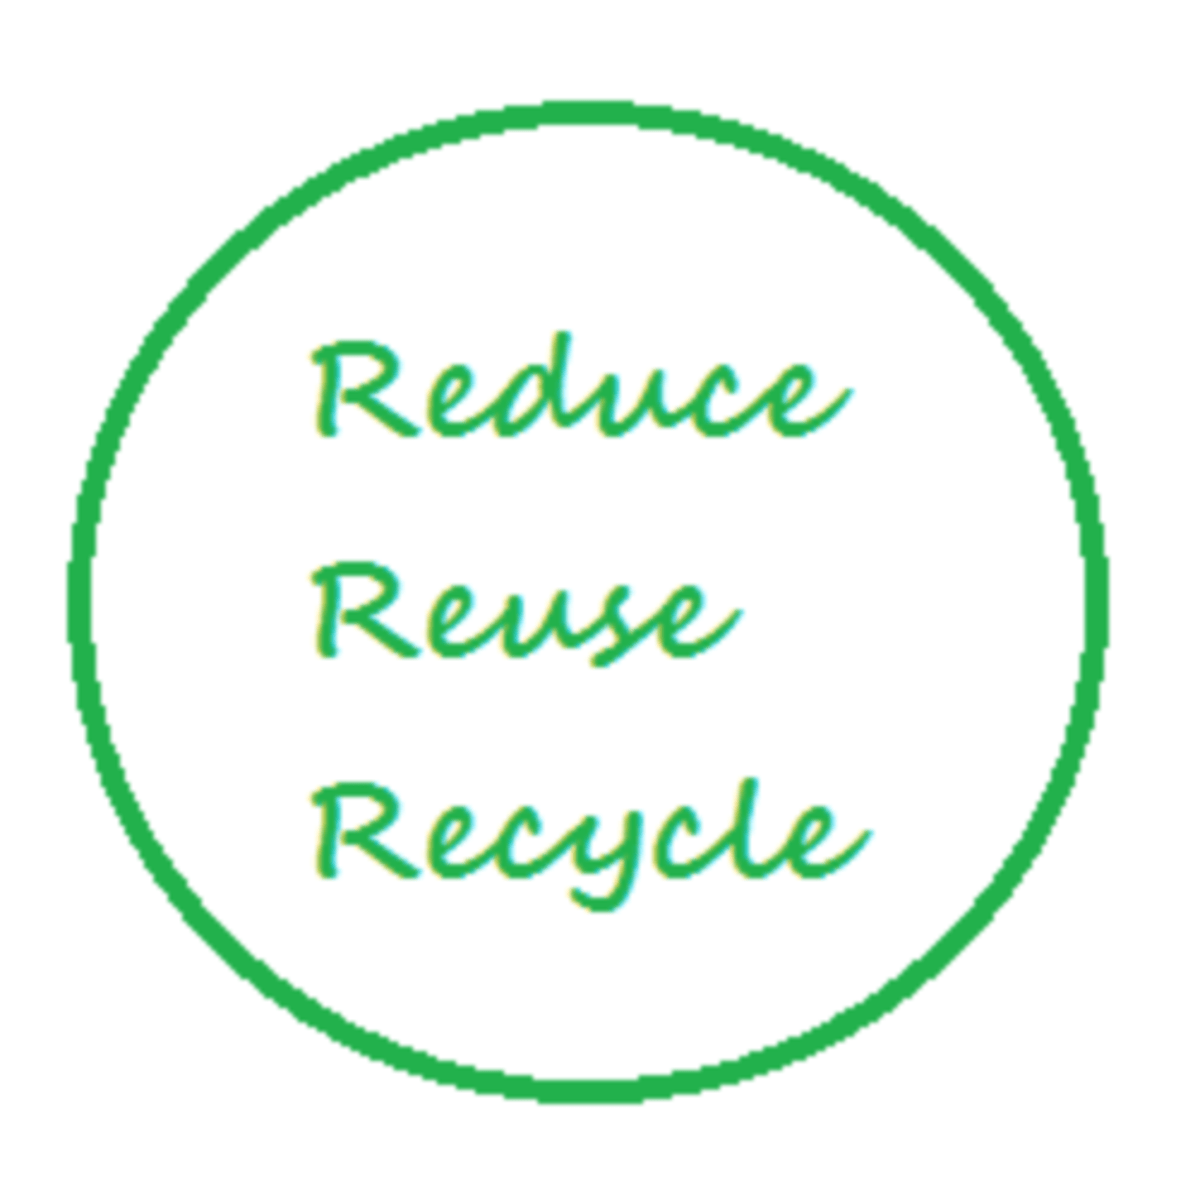 hight resolution of Recycling Worksheets for Kids - HubPages